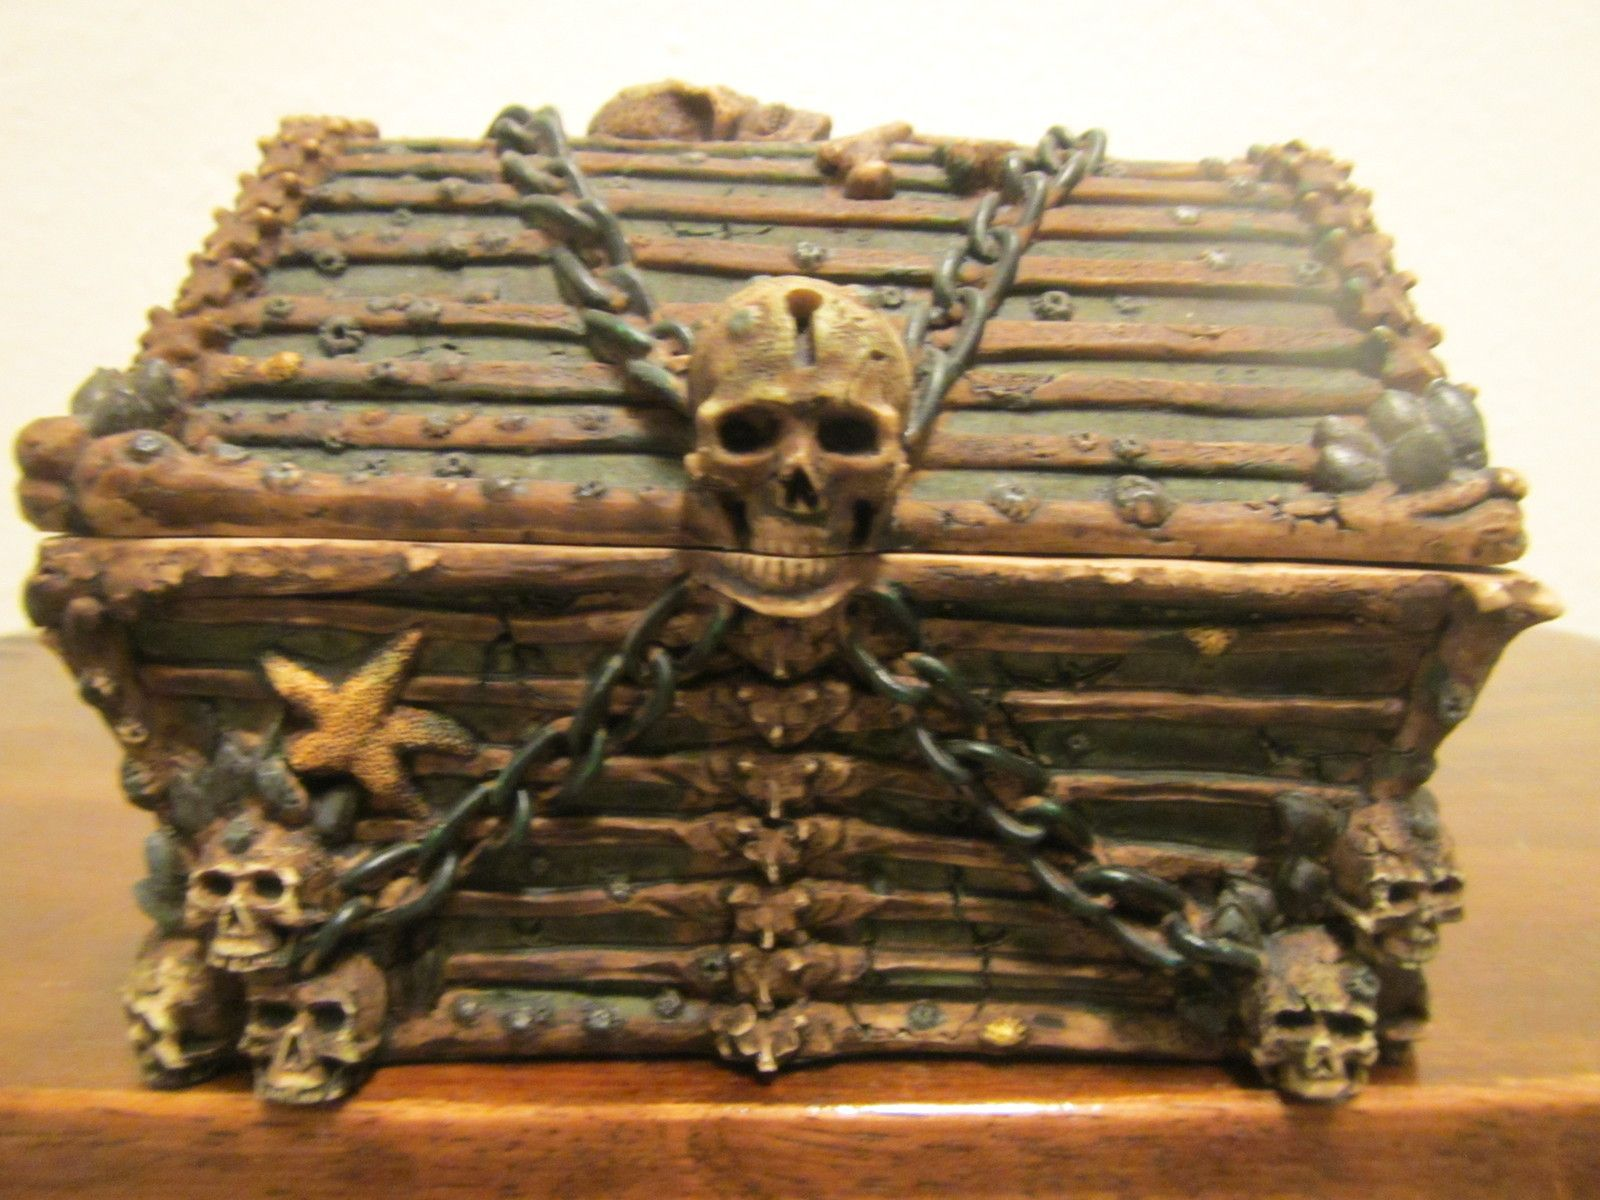 Disney Pirates Of The Caribbean Treasure Chest Ebay Treasure Chest Pirates Creepy Decor